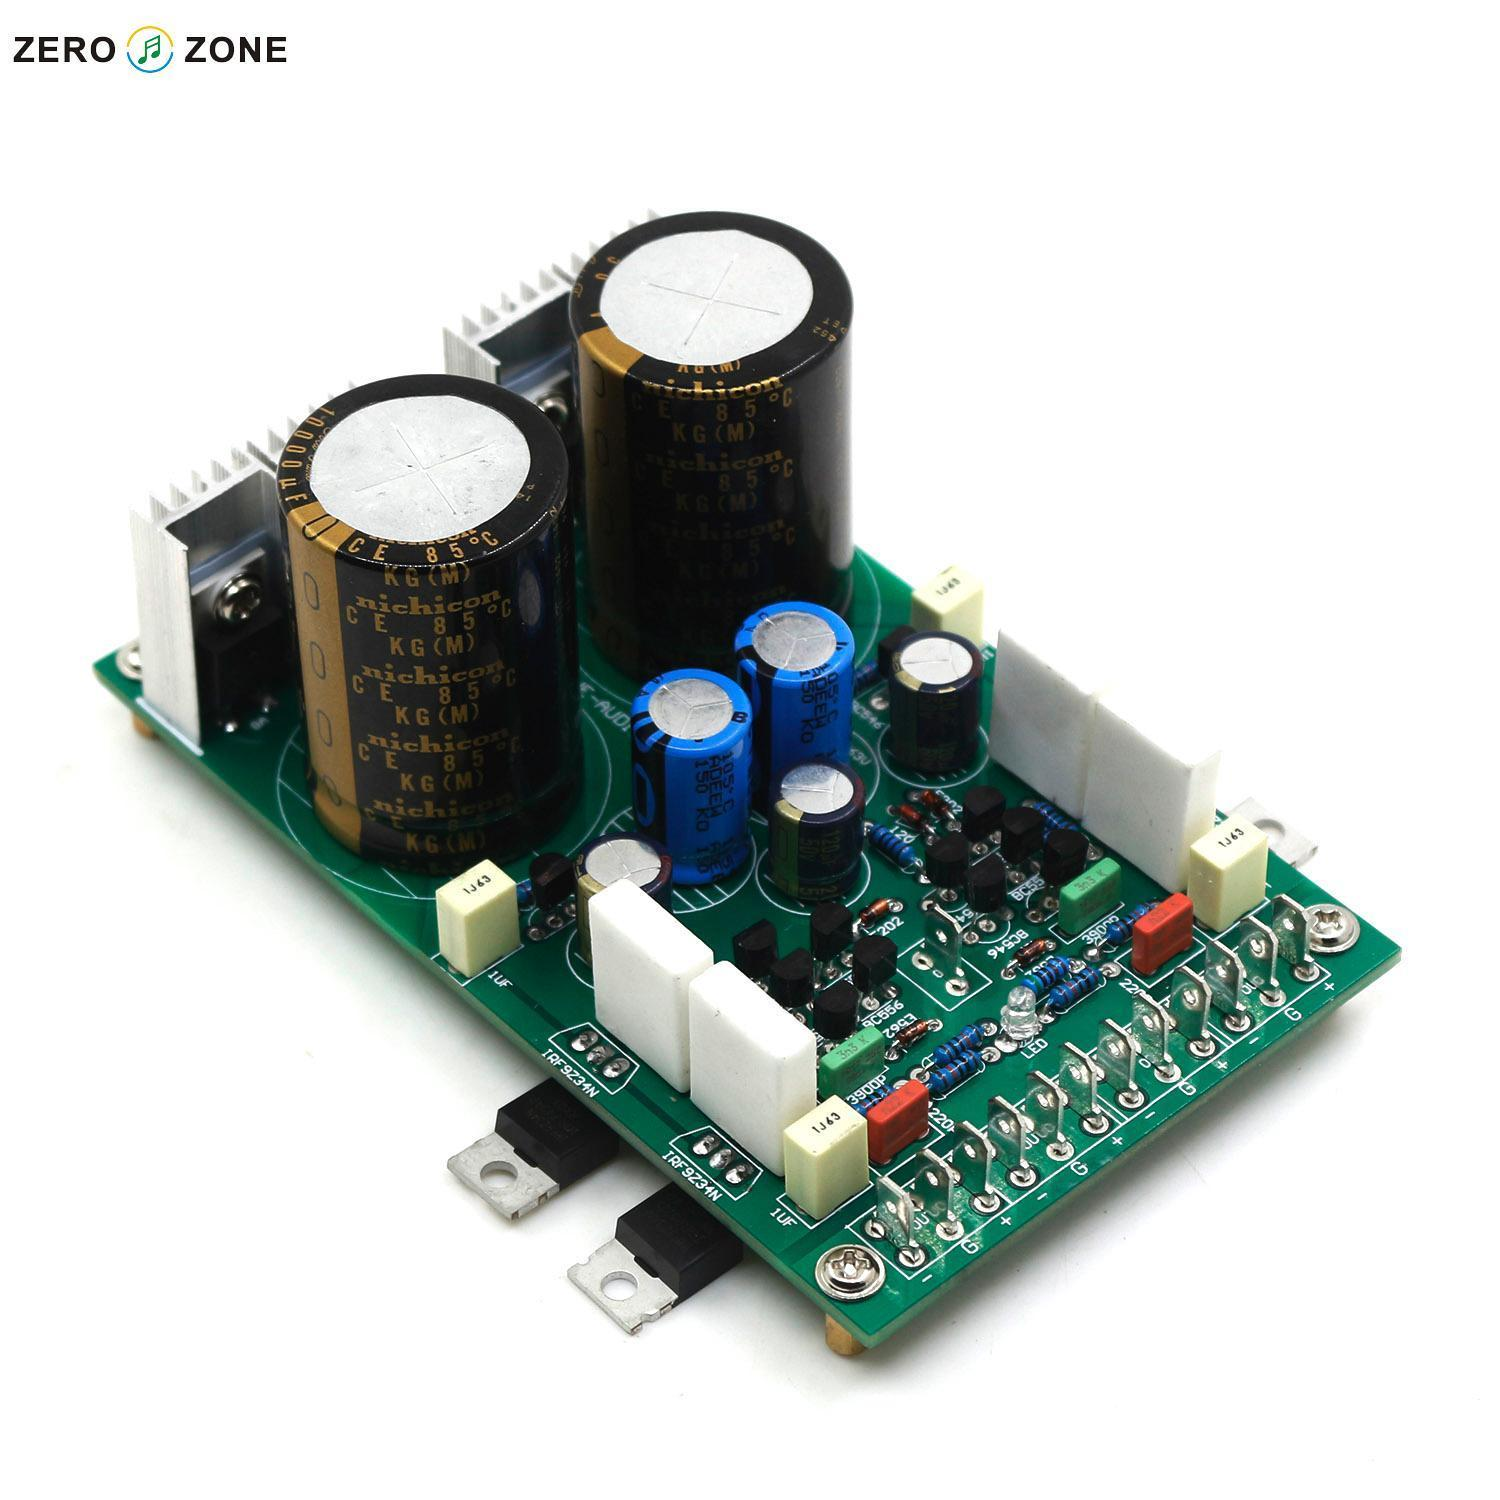 ZEROZONE Assembled HPX Dual Voltage Ultra low noise linear Power supply board L7-11 hpx ag01 1s original